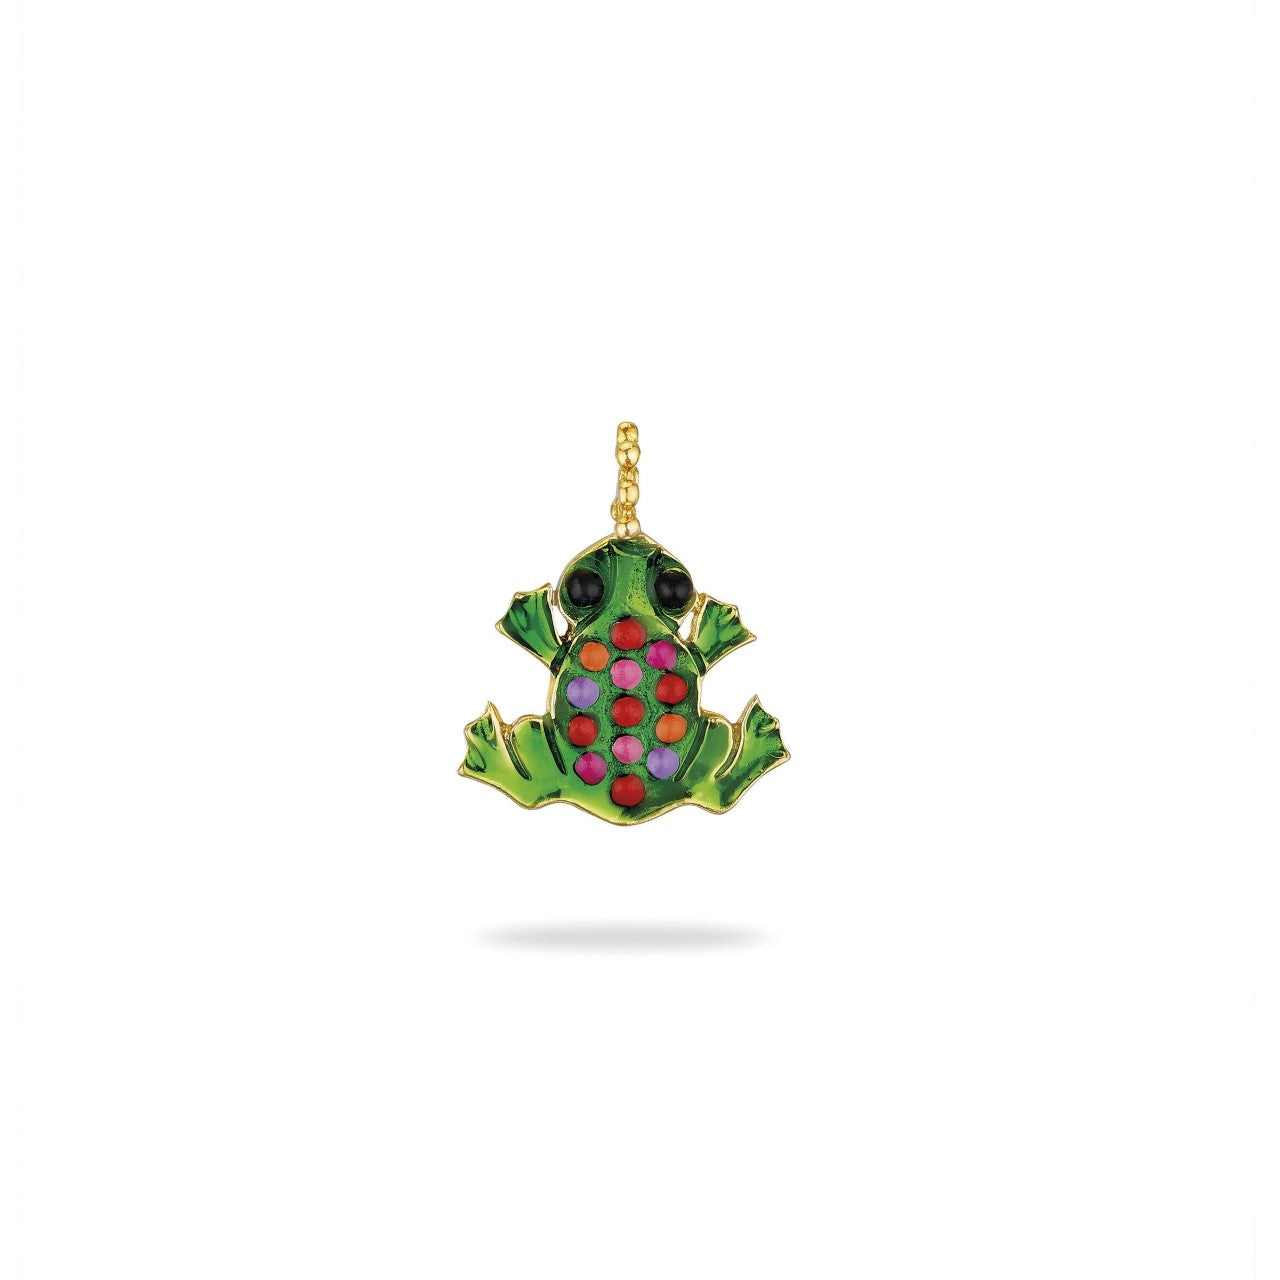 The Large Lacquered Frog Symbol of Life Pendant